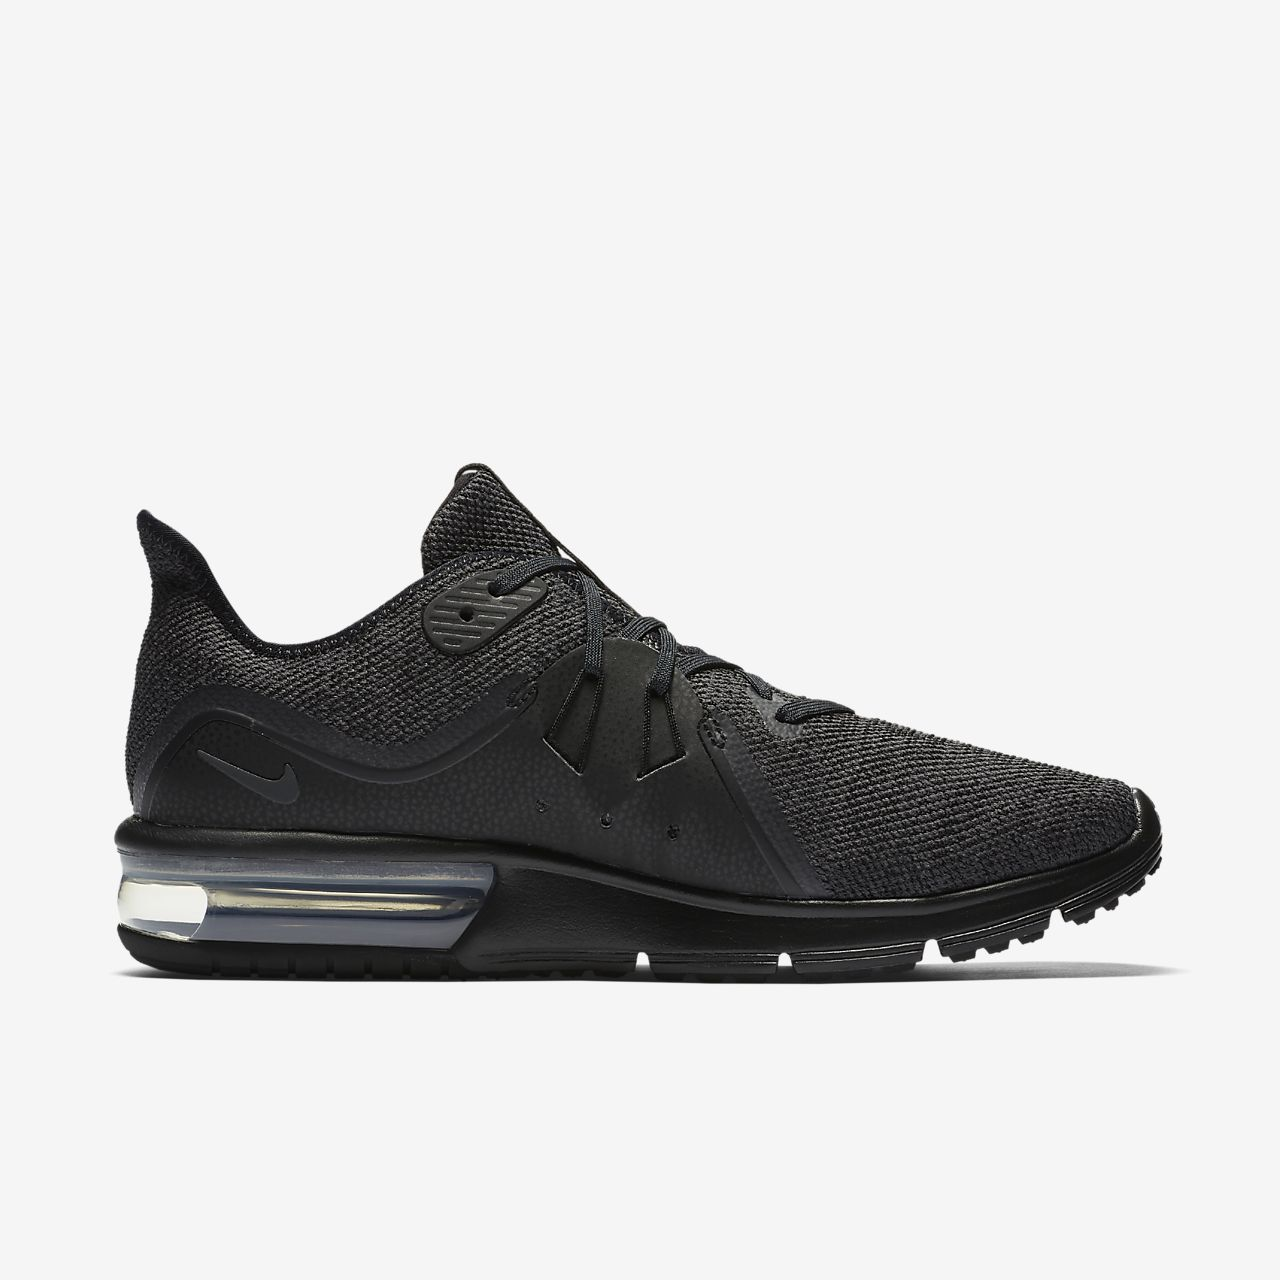 6451b283006 Nike Air Max Sequent 3 Men s Shoe. Nike.com ZA